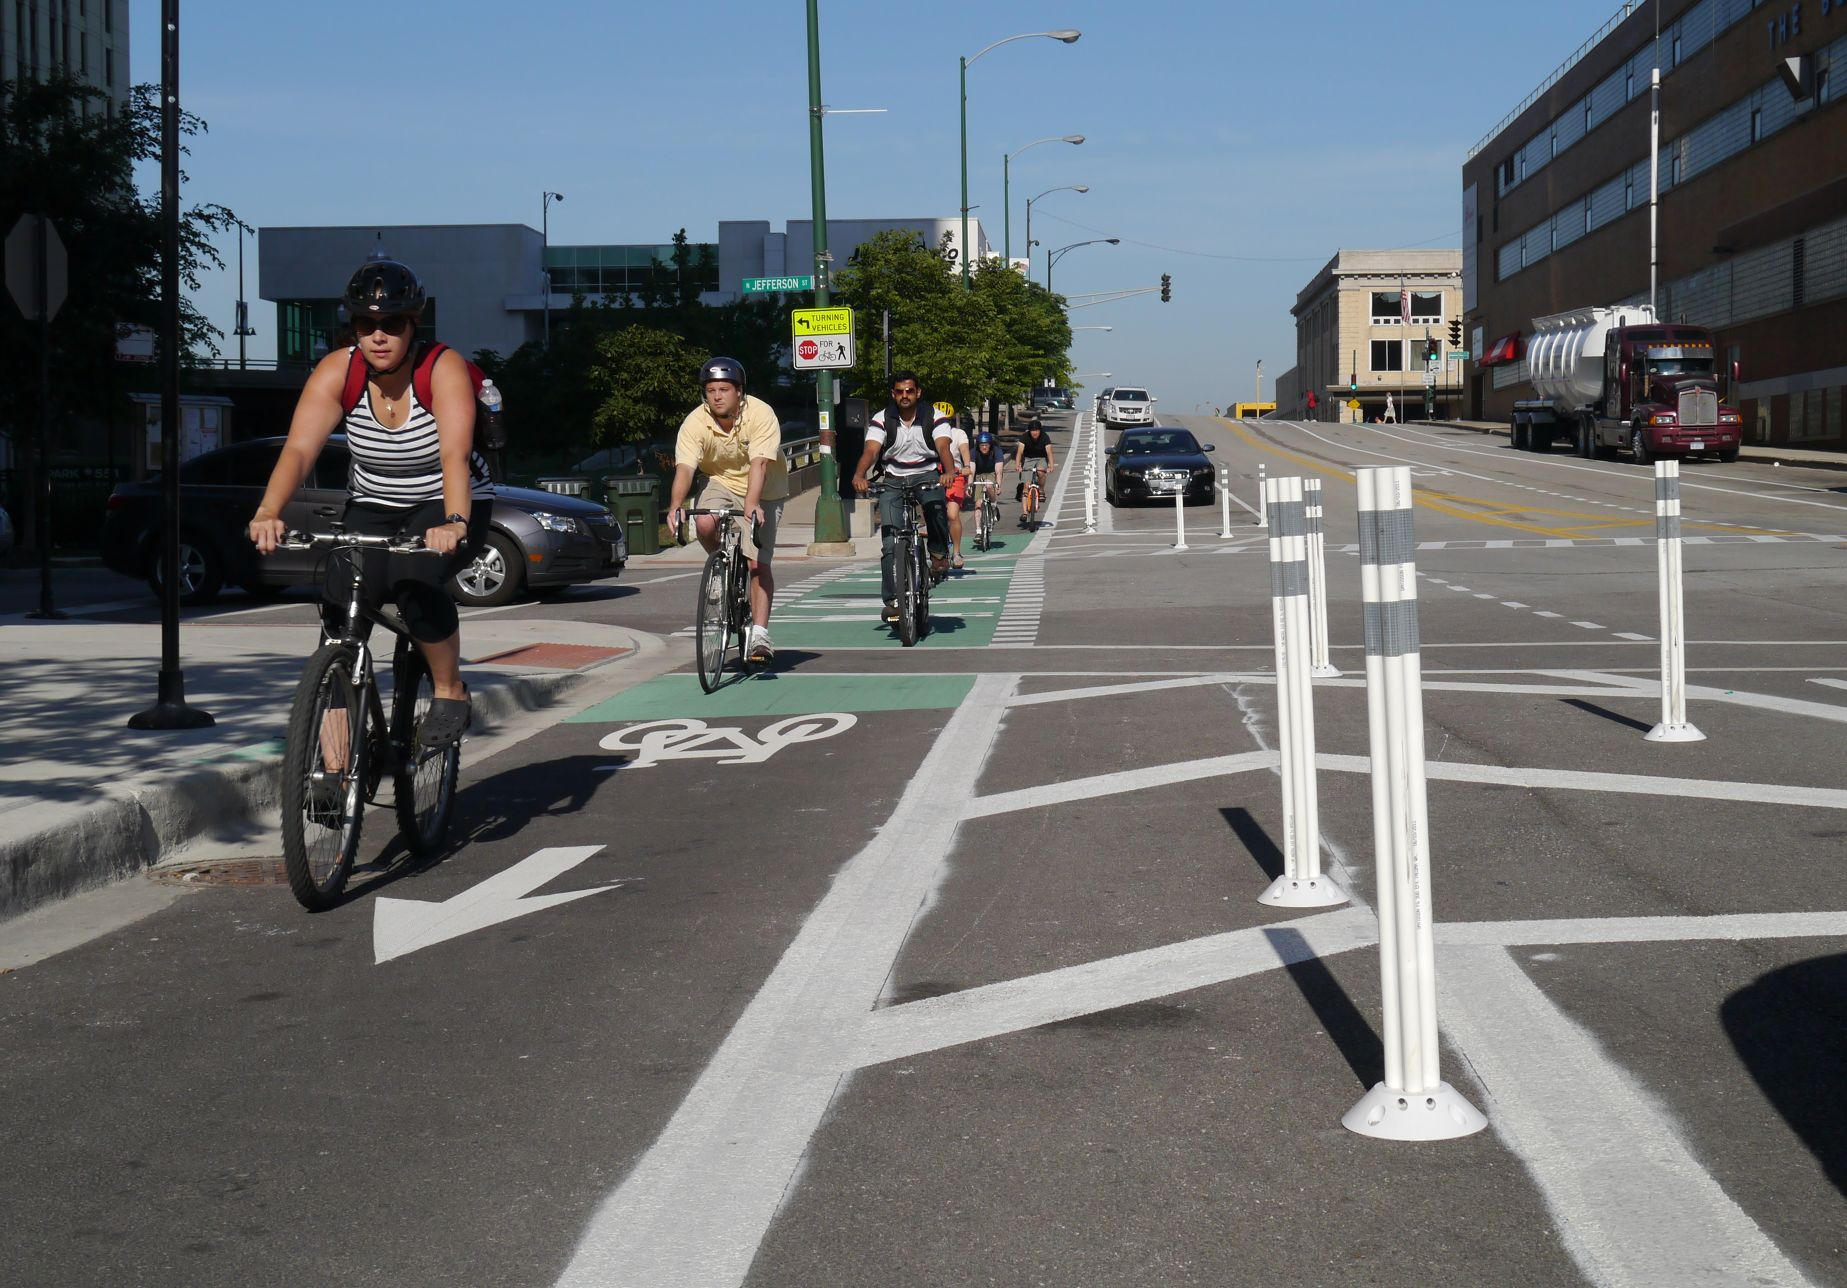 Bollard_protected_bike_lane_Chicago_Kinzi_(Active_Transportation_Alliance).jpg